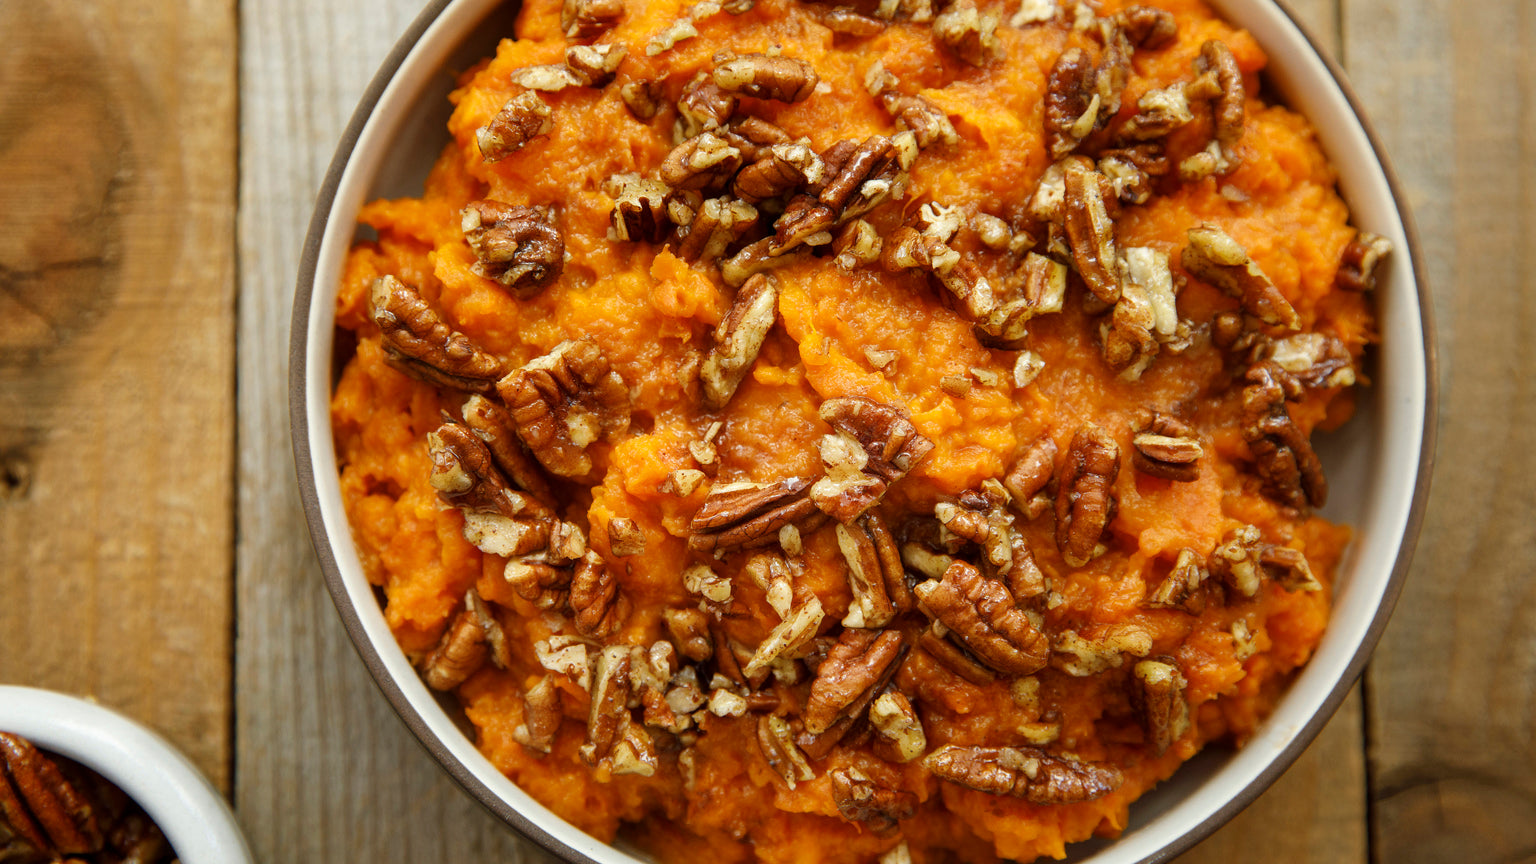 Coconut Mashed Yams with Maple Pecan Crust